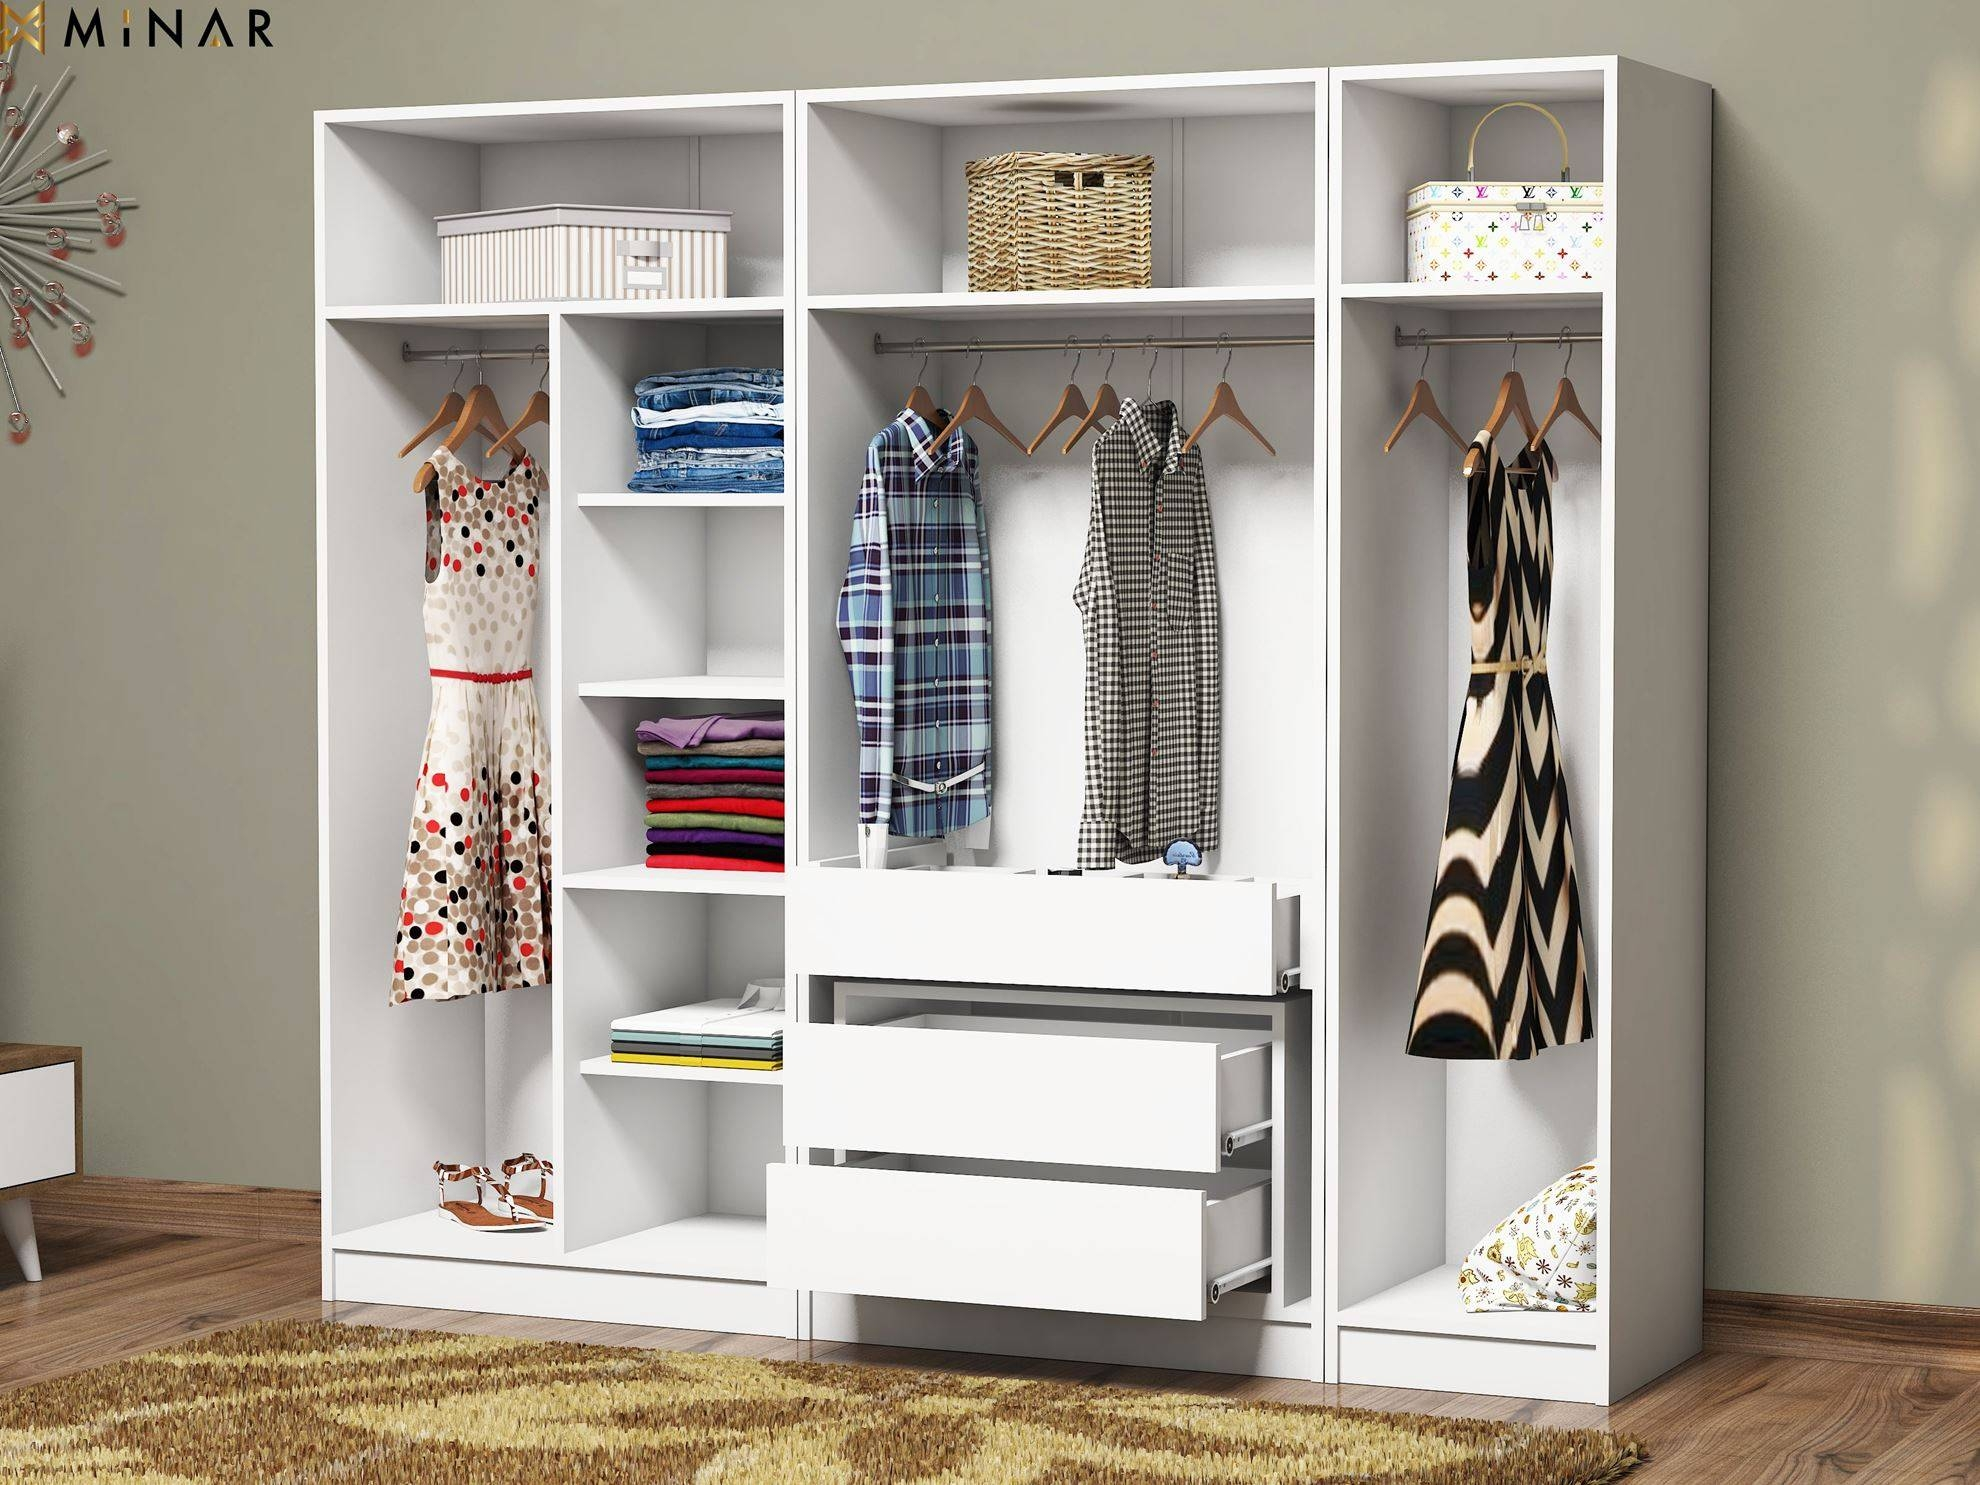 Minar Mobilya. Recently Viewed Products. Granikos 5 Doors 1 Hole 3 for Wardrobes With Drawers and Shelves (Image 19 of 30)